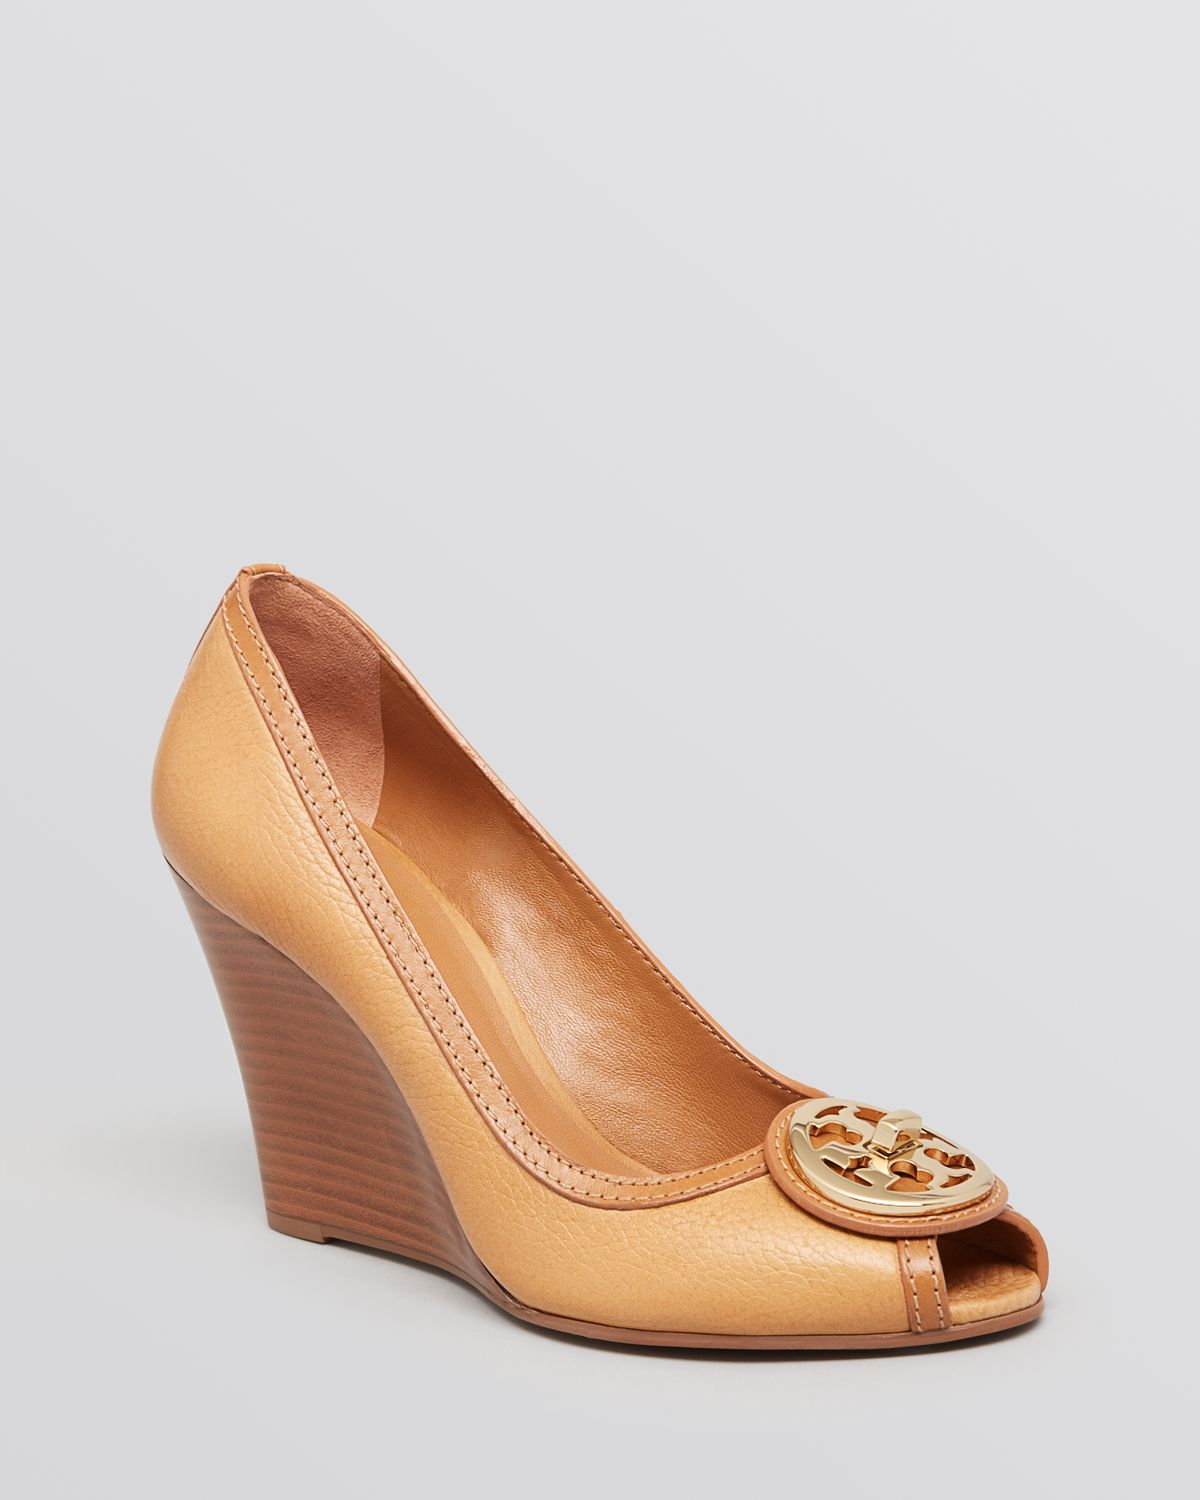 9b5447a0c8d5 Tory Burch Selma Peep Toe Wedge Pumps in Natural - Lyst